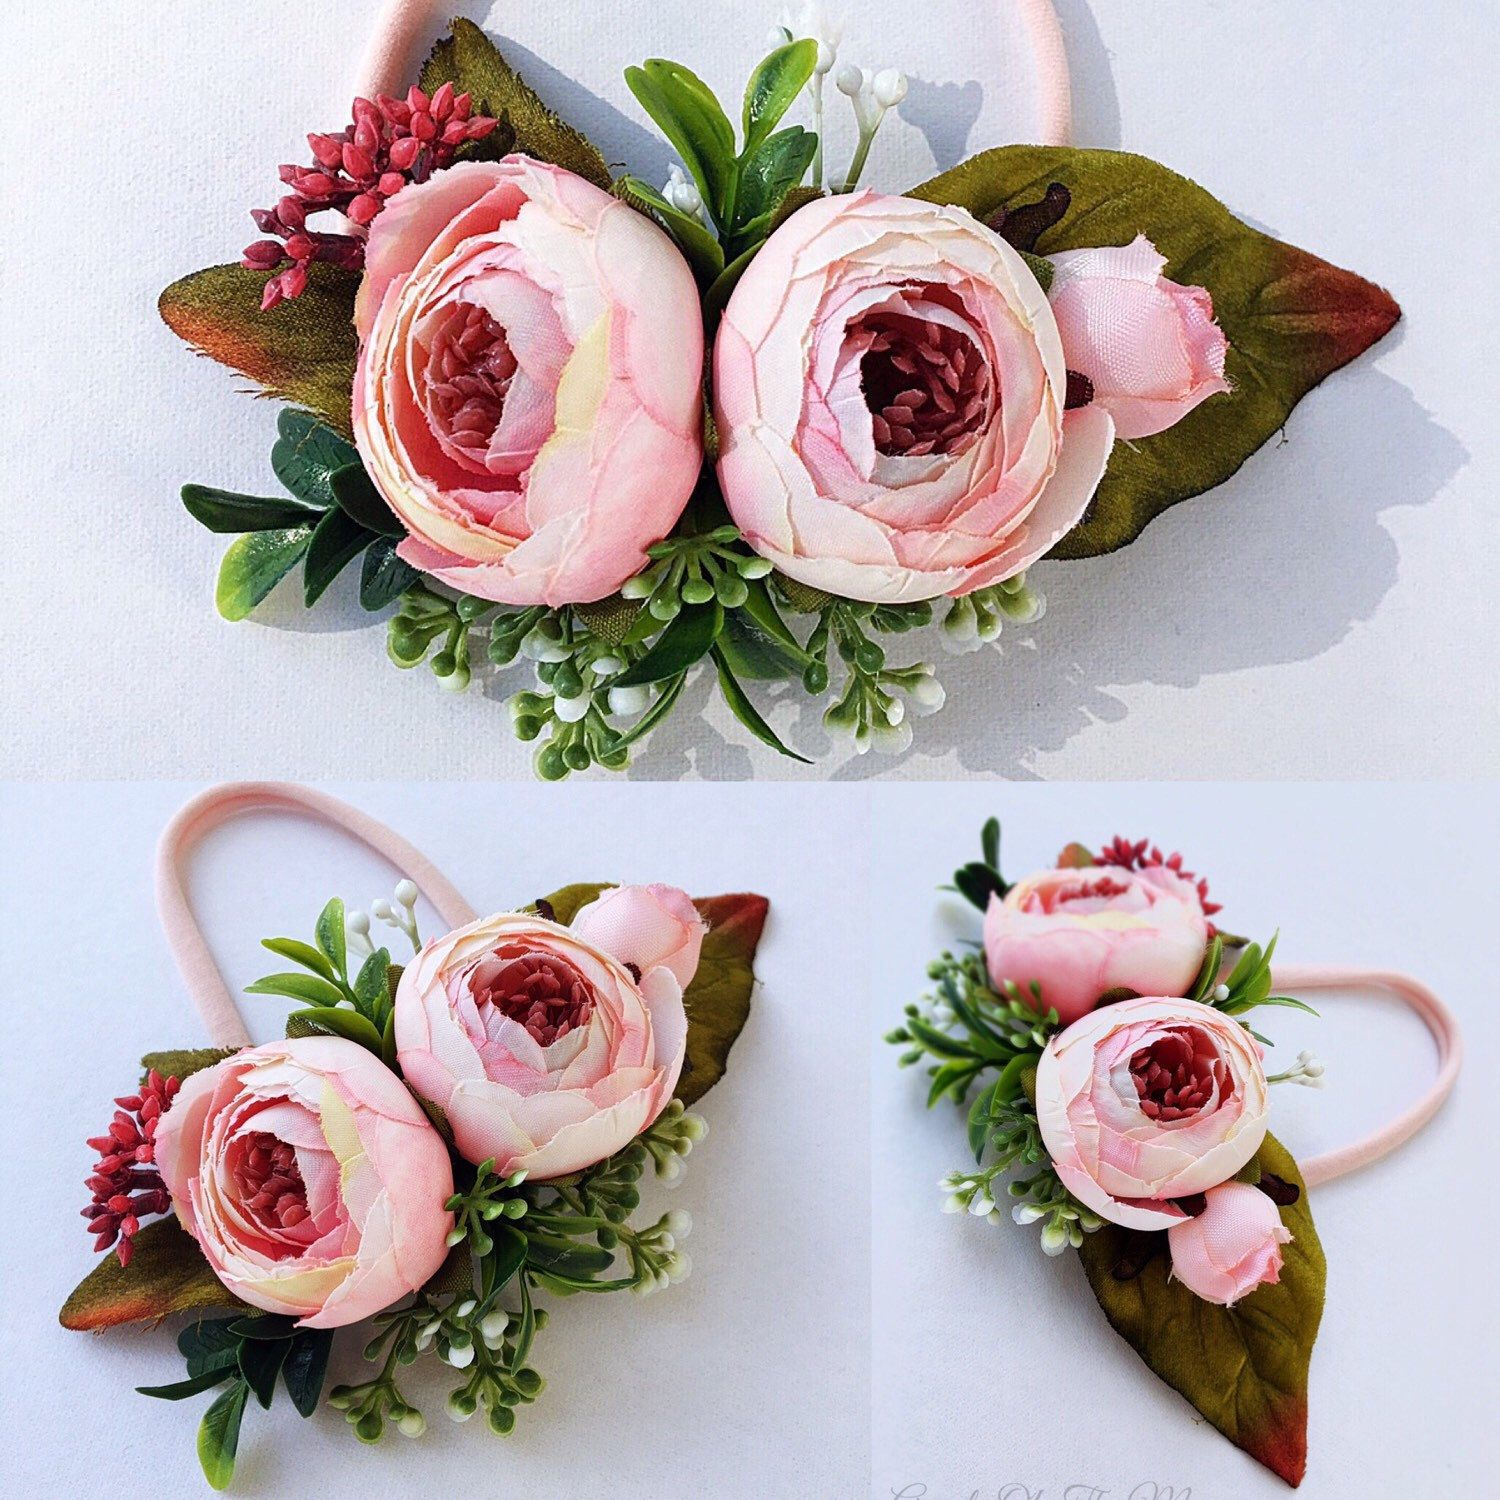 This Adorable Silk Flowers Accentuated With Stunning Green Leaves